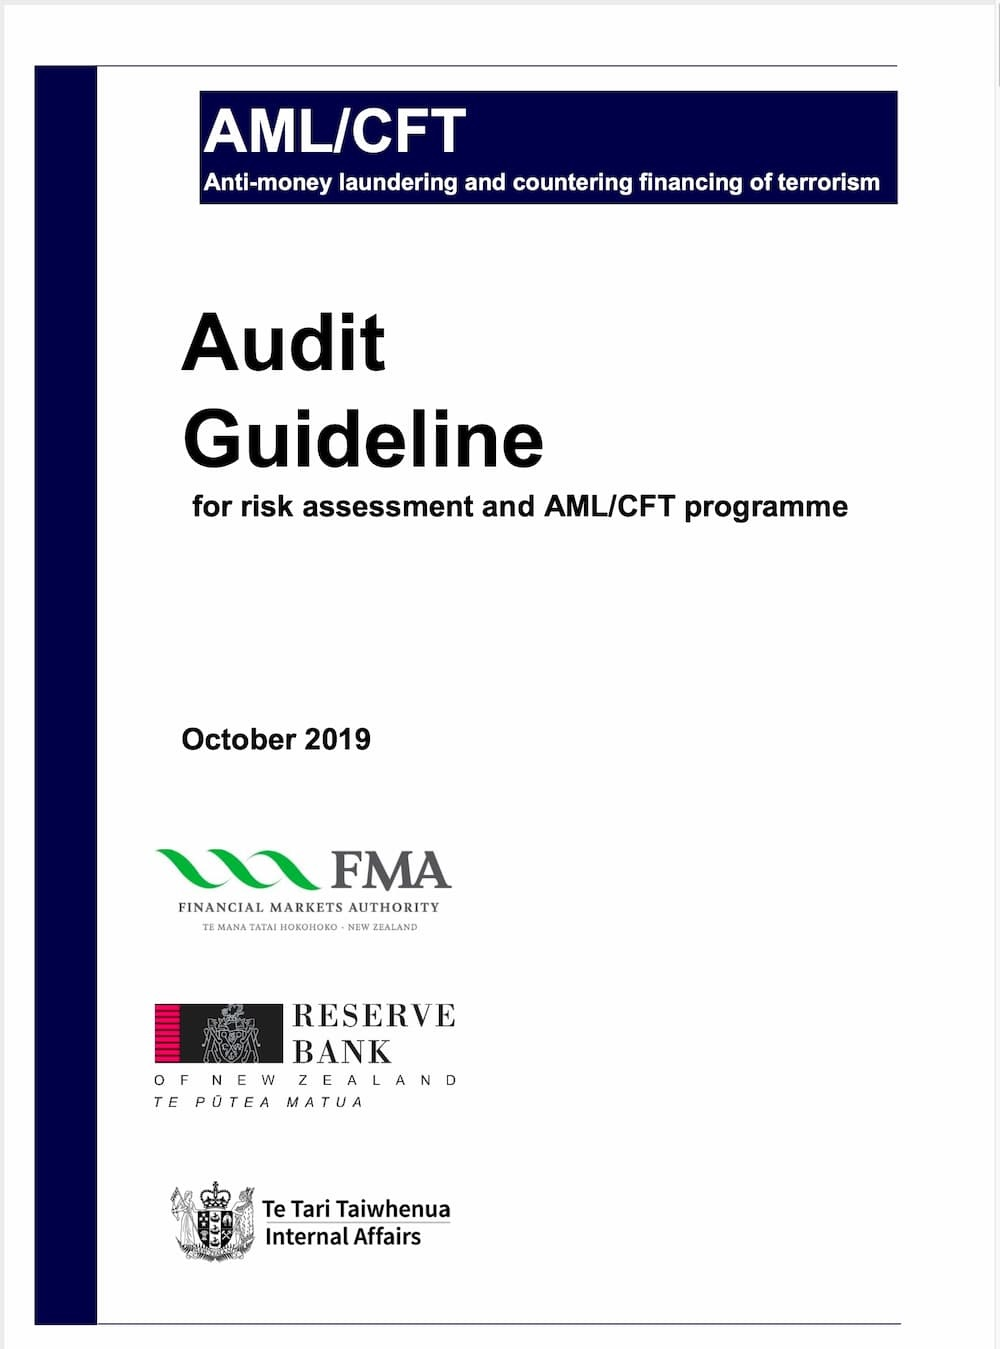 Audit Guideline - Risk Assessment and AML Programme